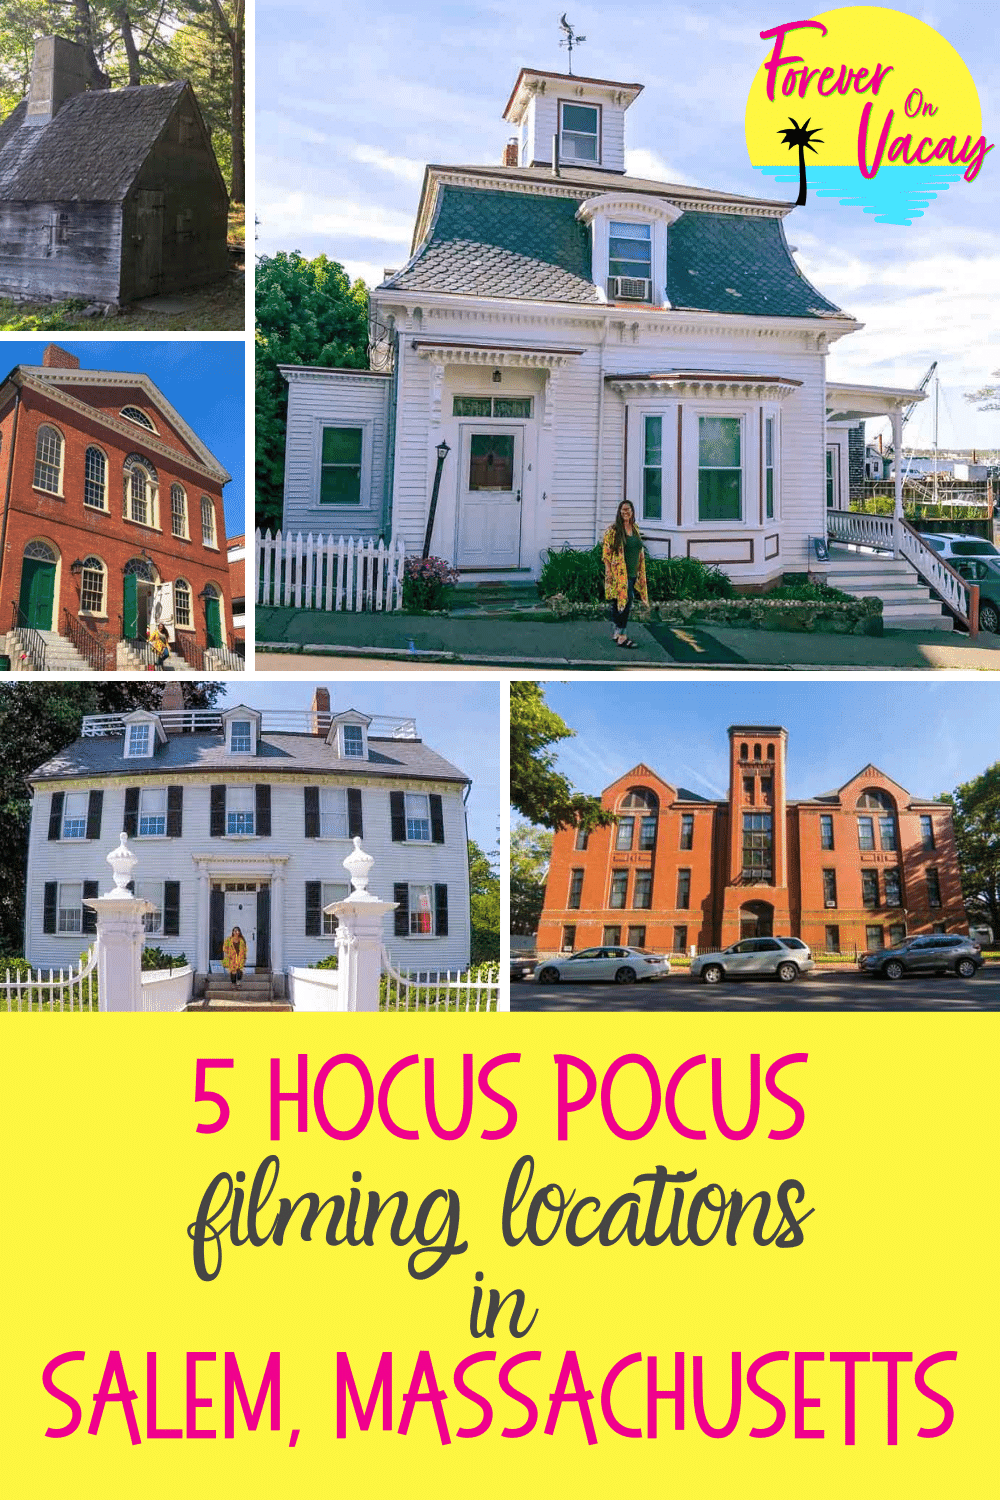 Pin this: Hocus Pocus Filming Locations in Salem, Massachusetts